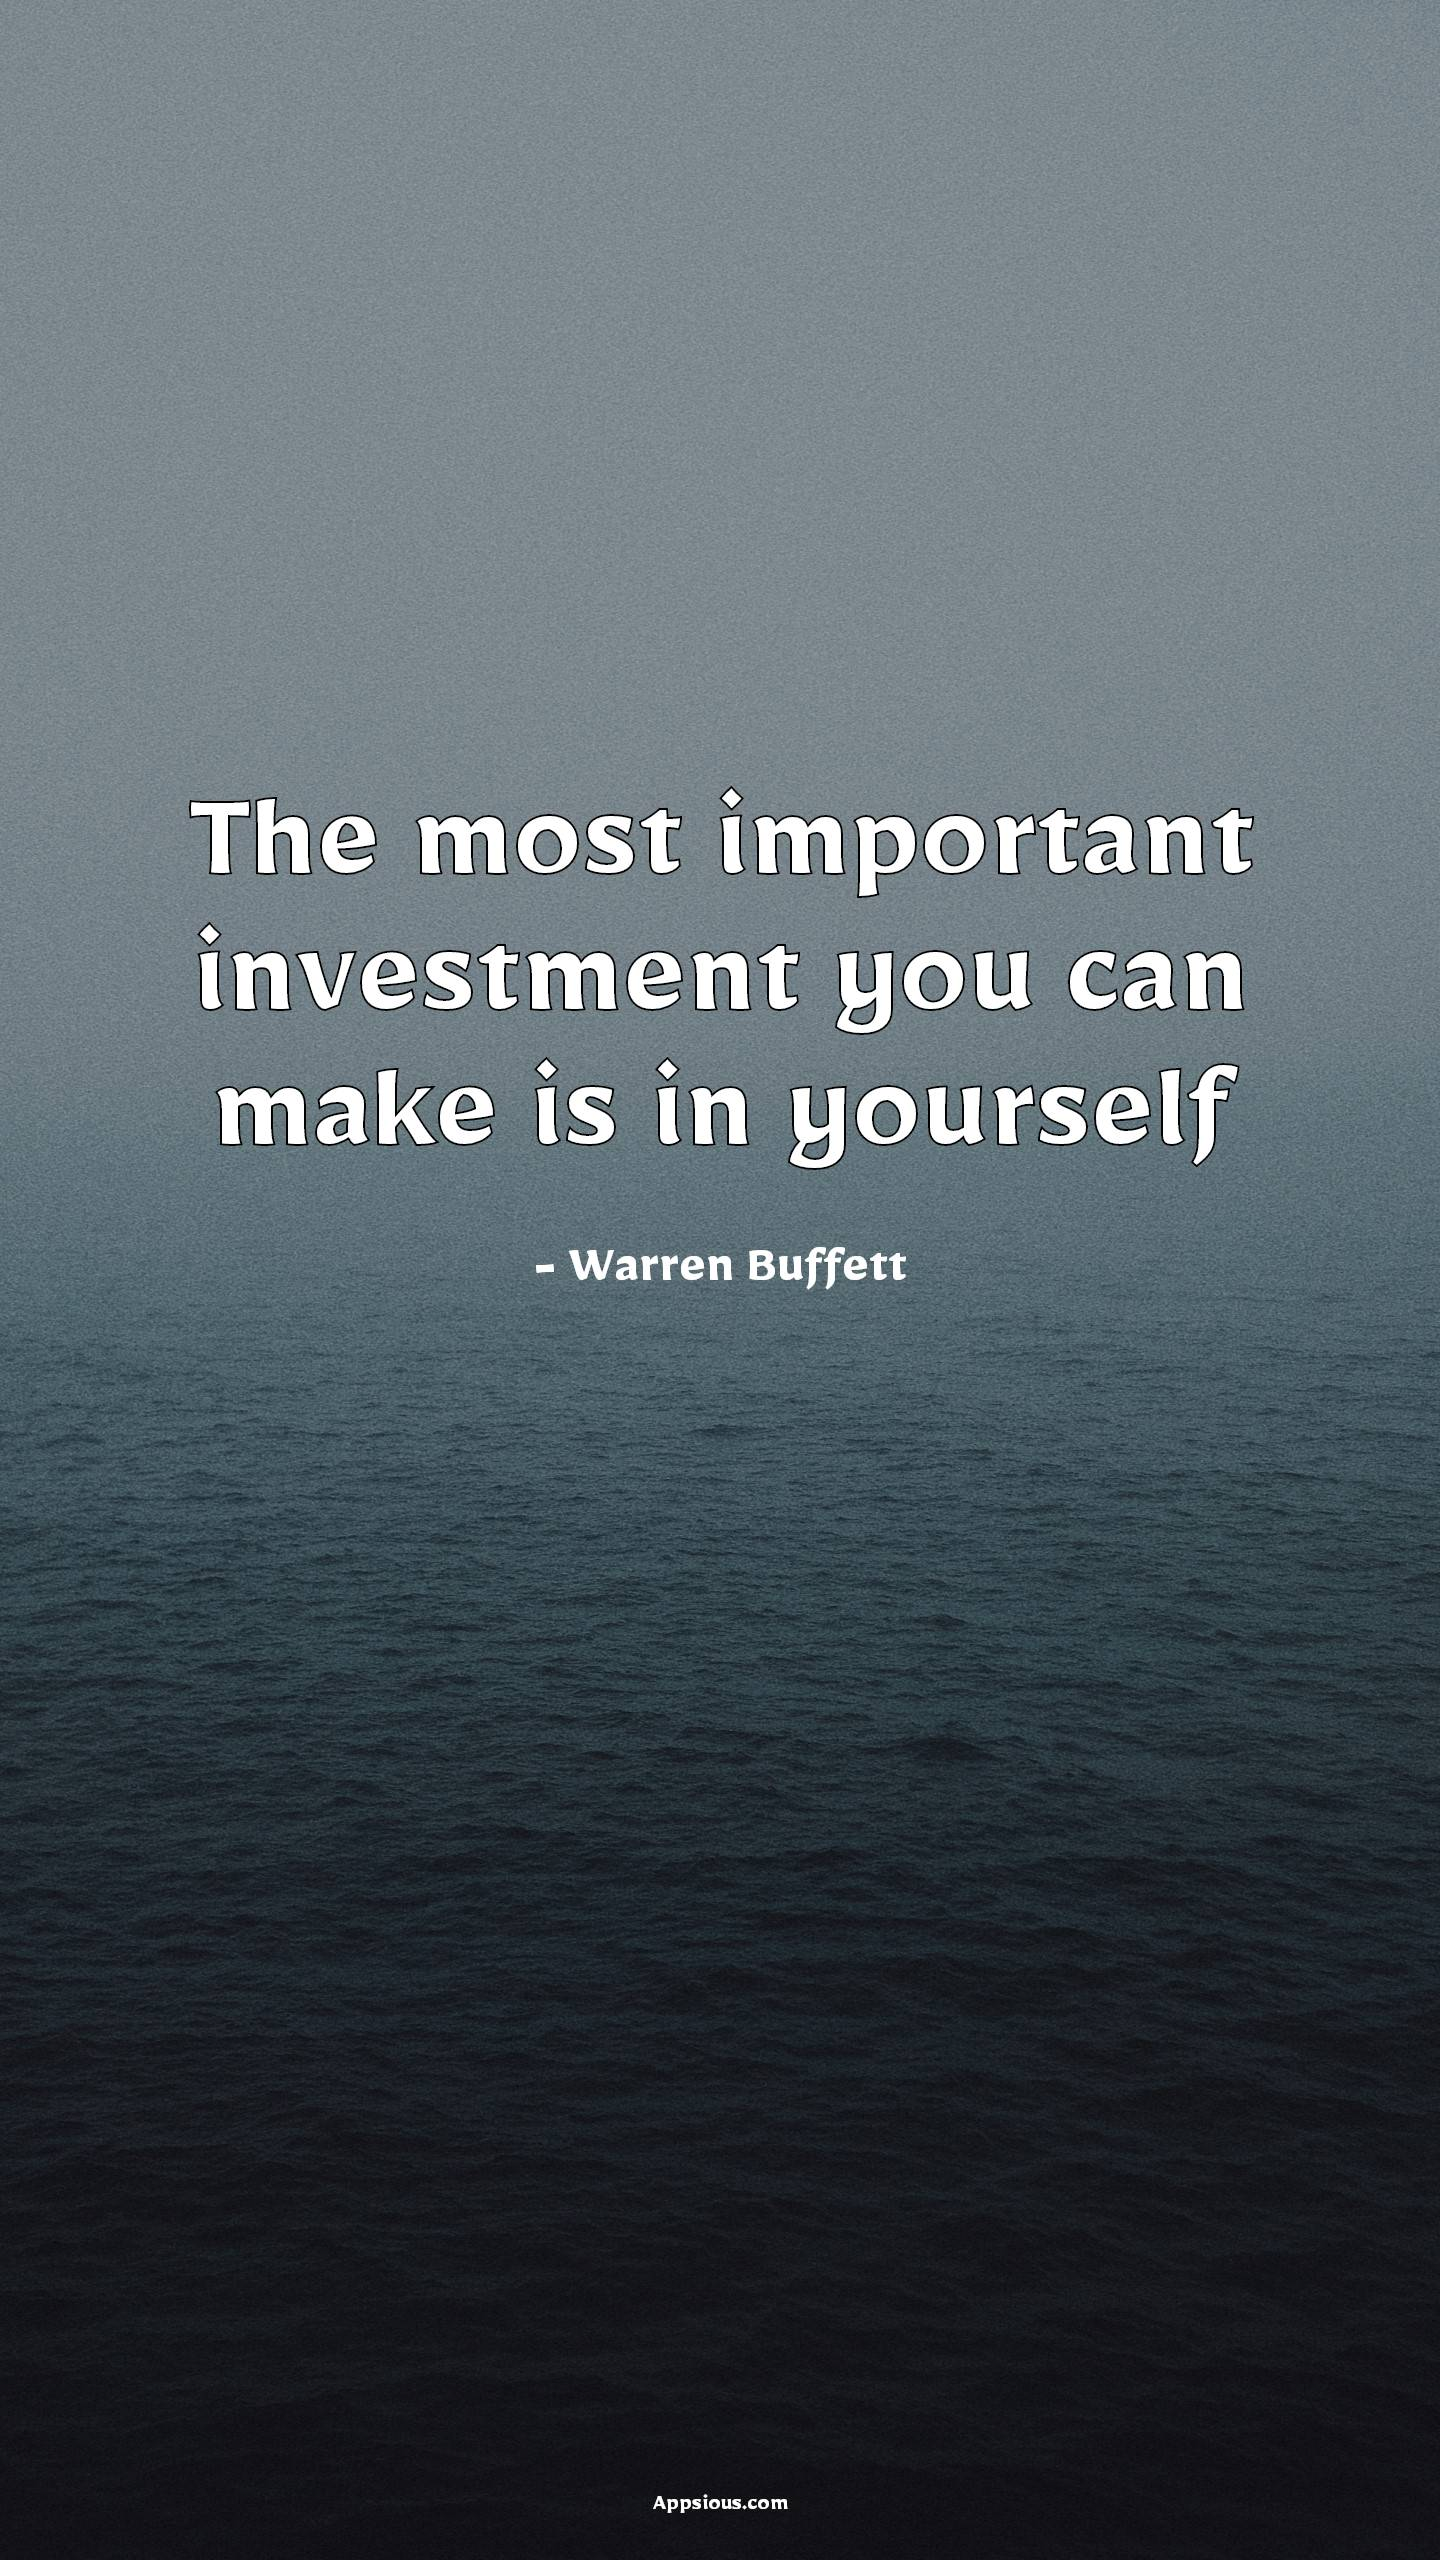 The most important investment you can make is in yourself